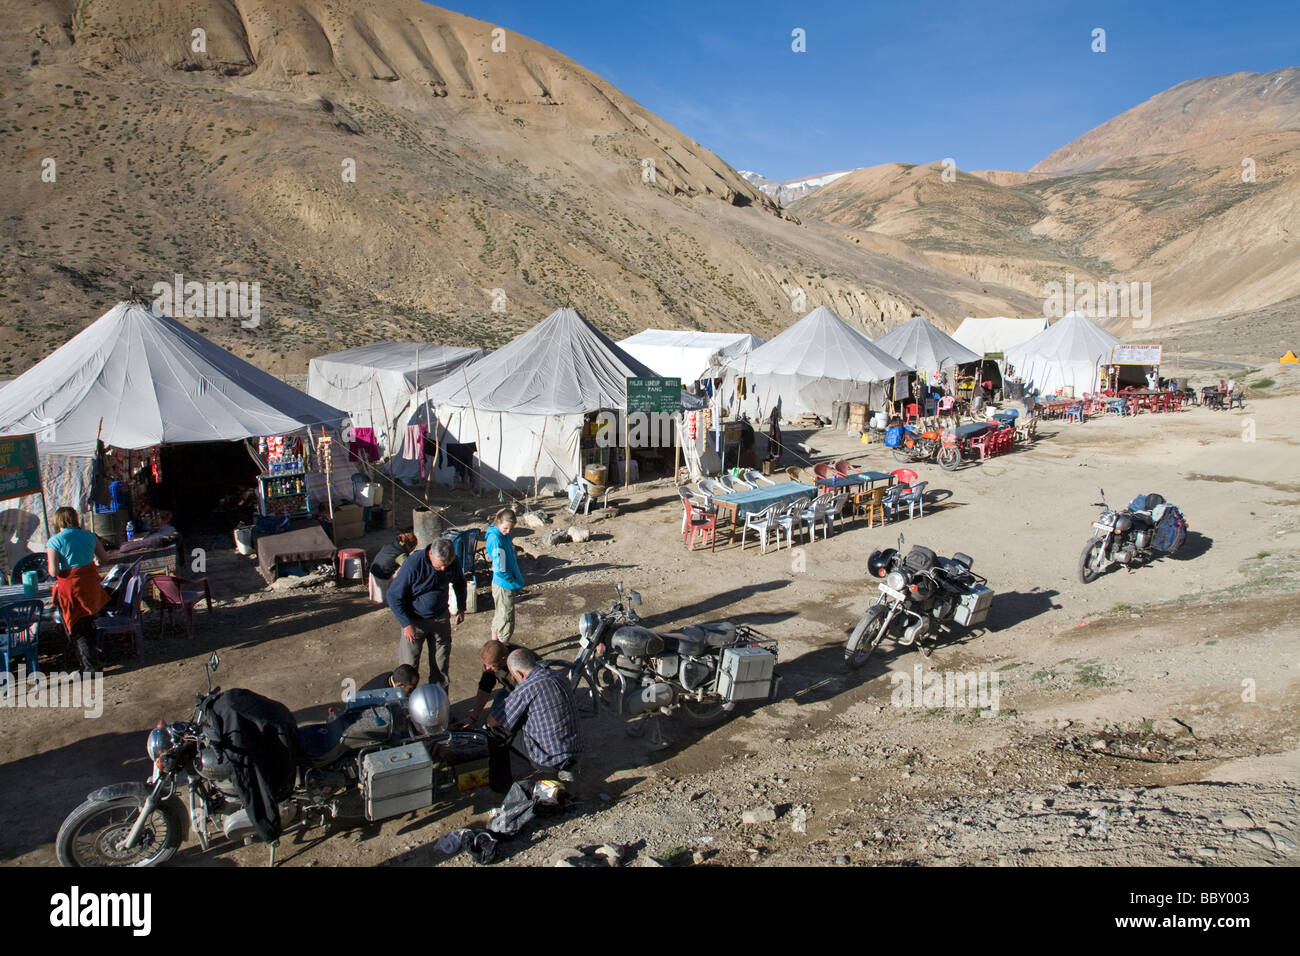 Pang tent village and bikers. Manali Leh road. Ladakh. India - Stock Photo : tent repair service - memphite.com